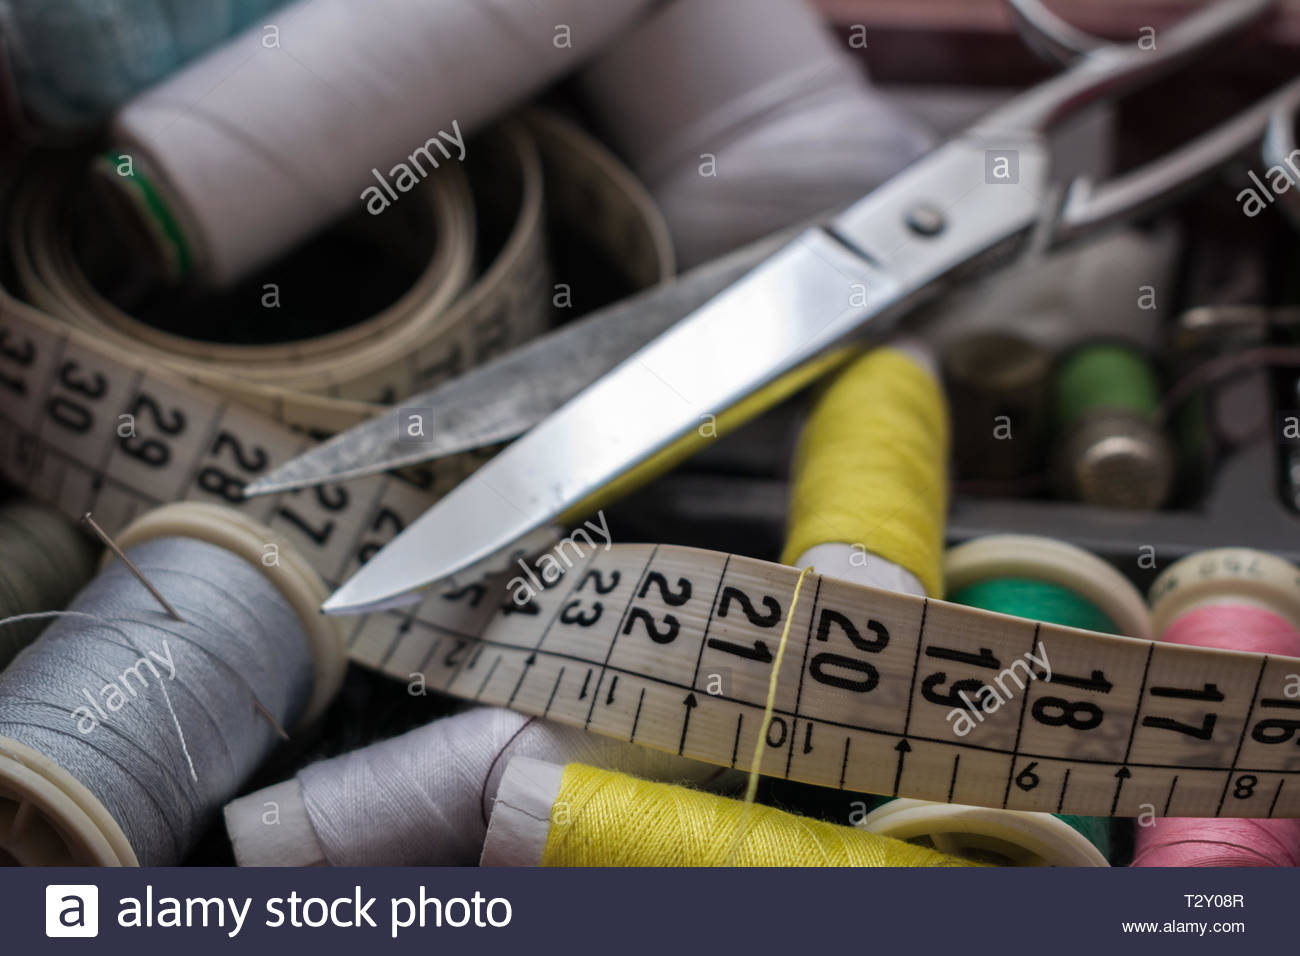 Colored threads, scissors and tape measure. Objects needed for a tailo - Stock Image